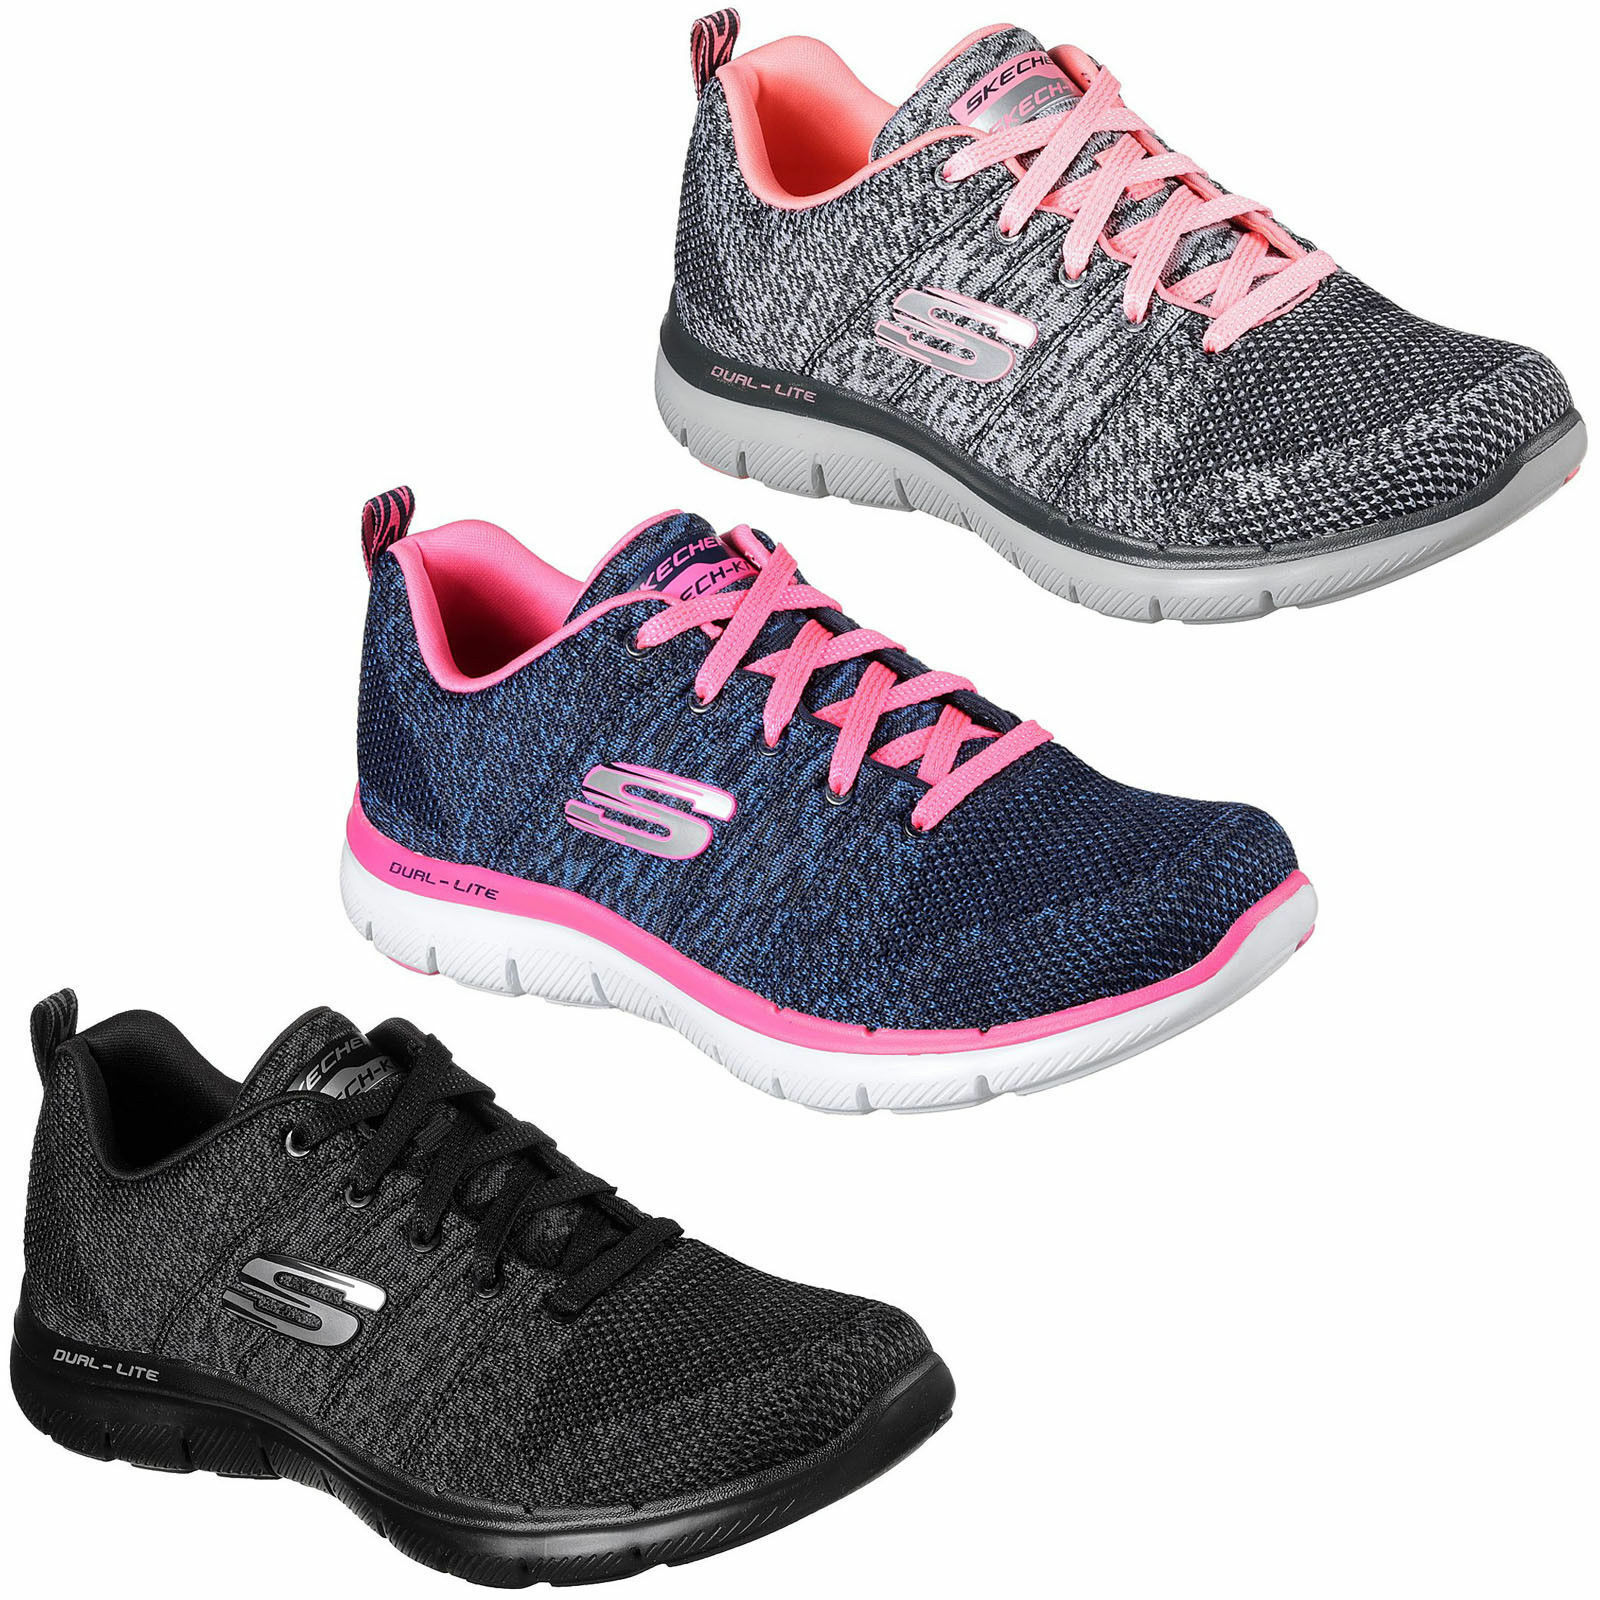 Skechers Flex Appeal 2.0 High Energy Trainers Womens Sports Memory Foam shoes